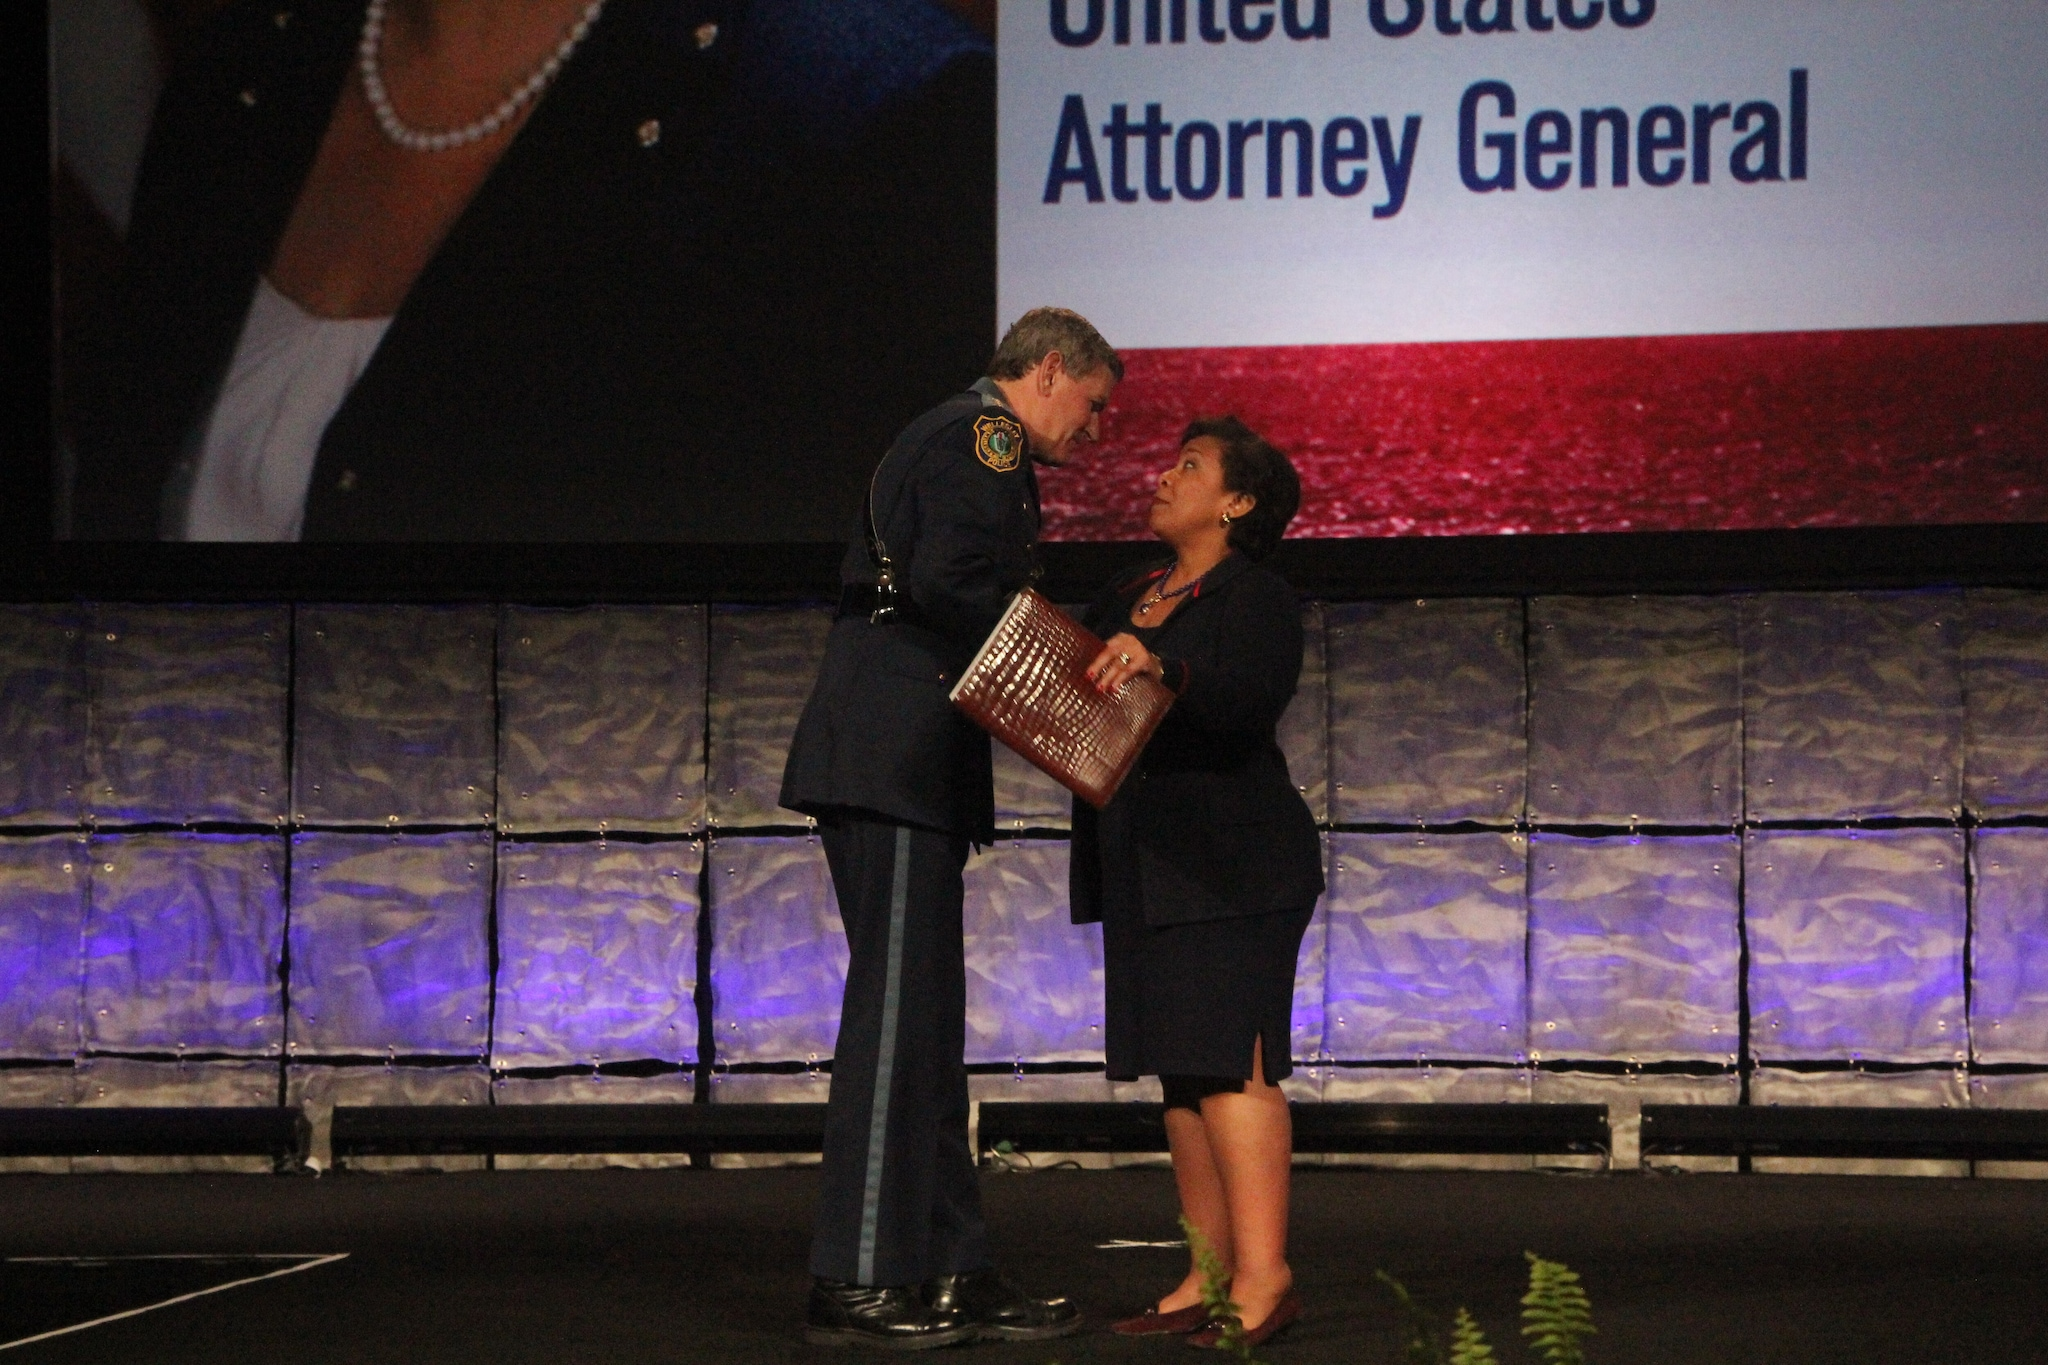 U.S. Attorney General Loretta Lynch is greeted by IACP head Terry Cunningham before taking the podium during the National Association of Police Chiefs annual convention in San Diego Oct. 15-18, 2015. (Photo: Jared Morgan / Guns.com)